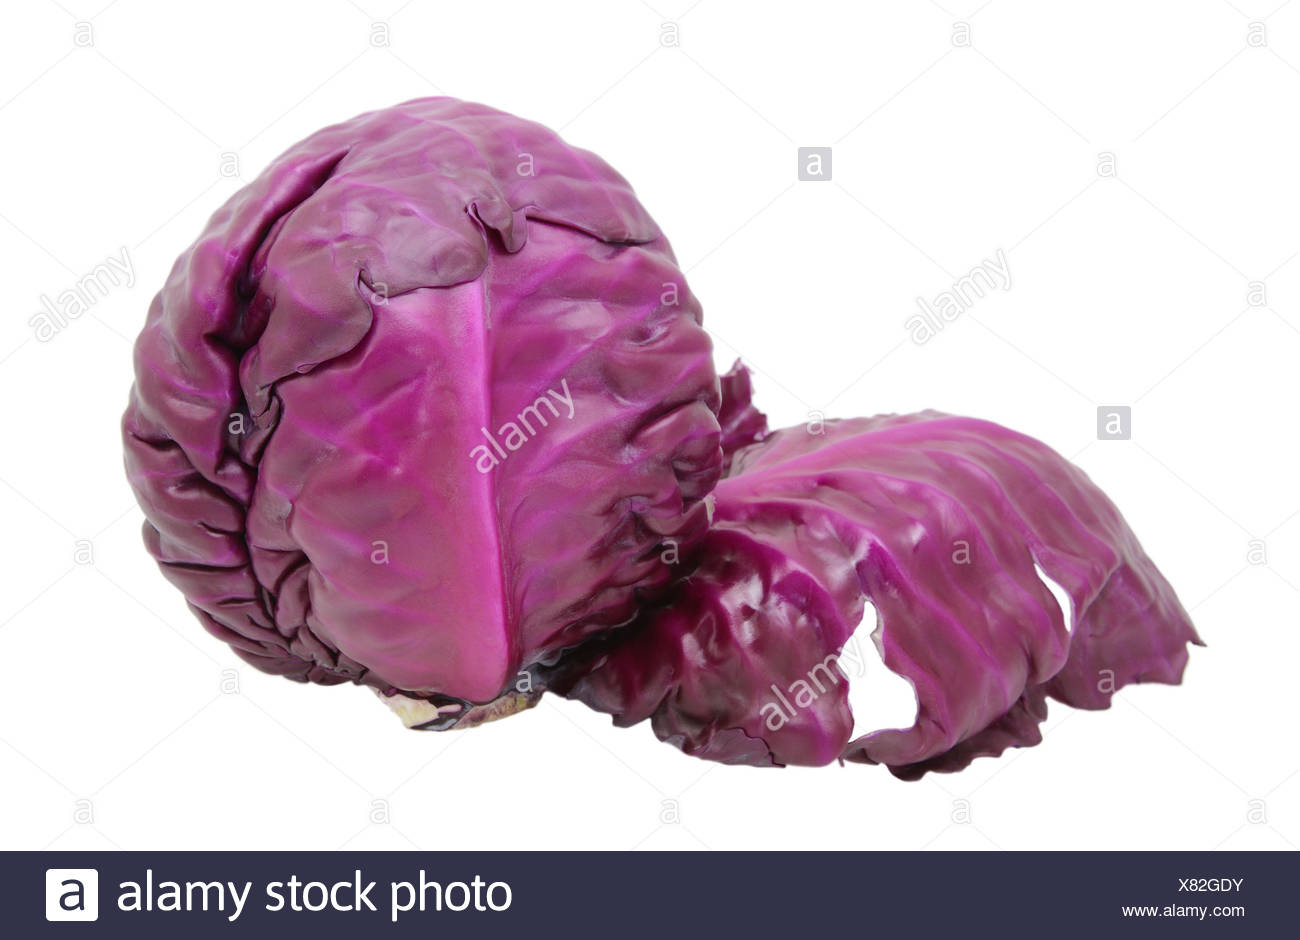 Red cabbage with a leaf peeling away - Stock Image